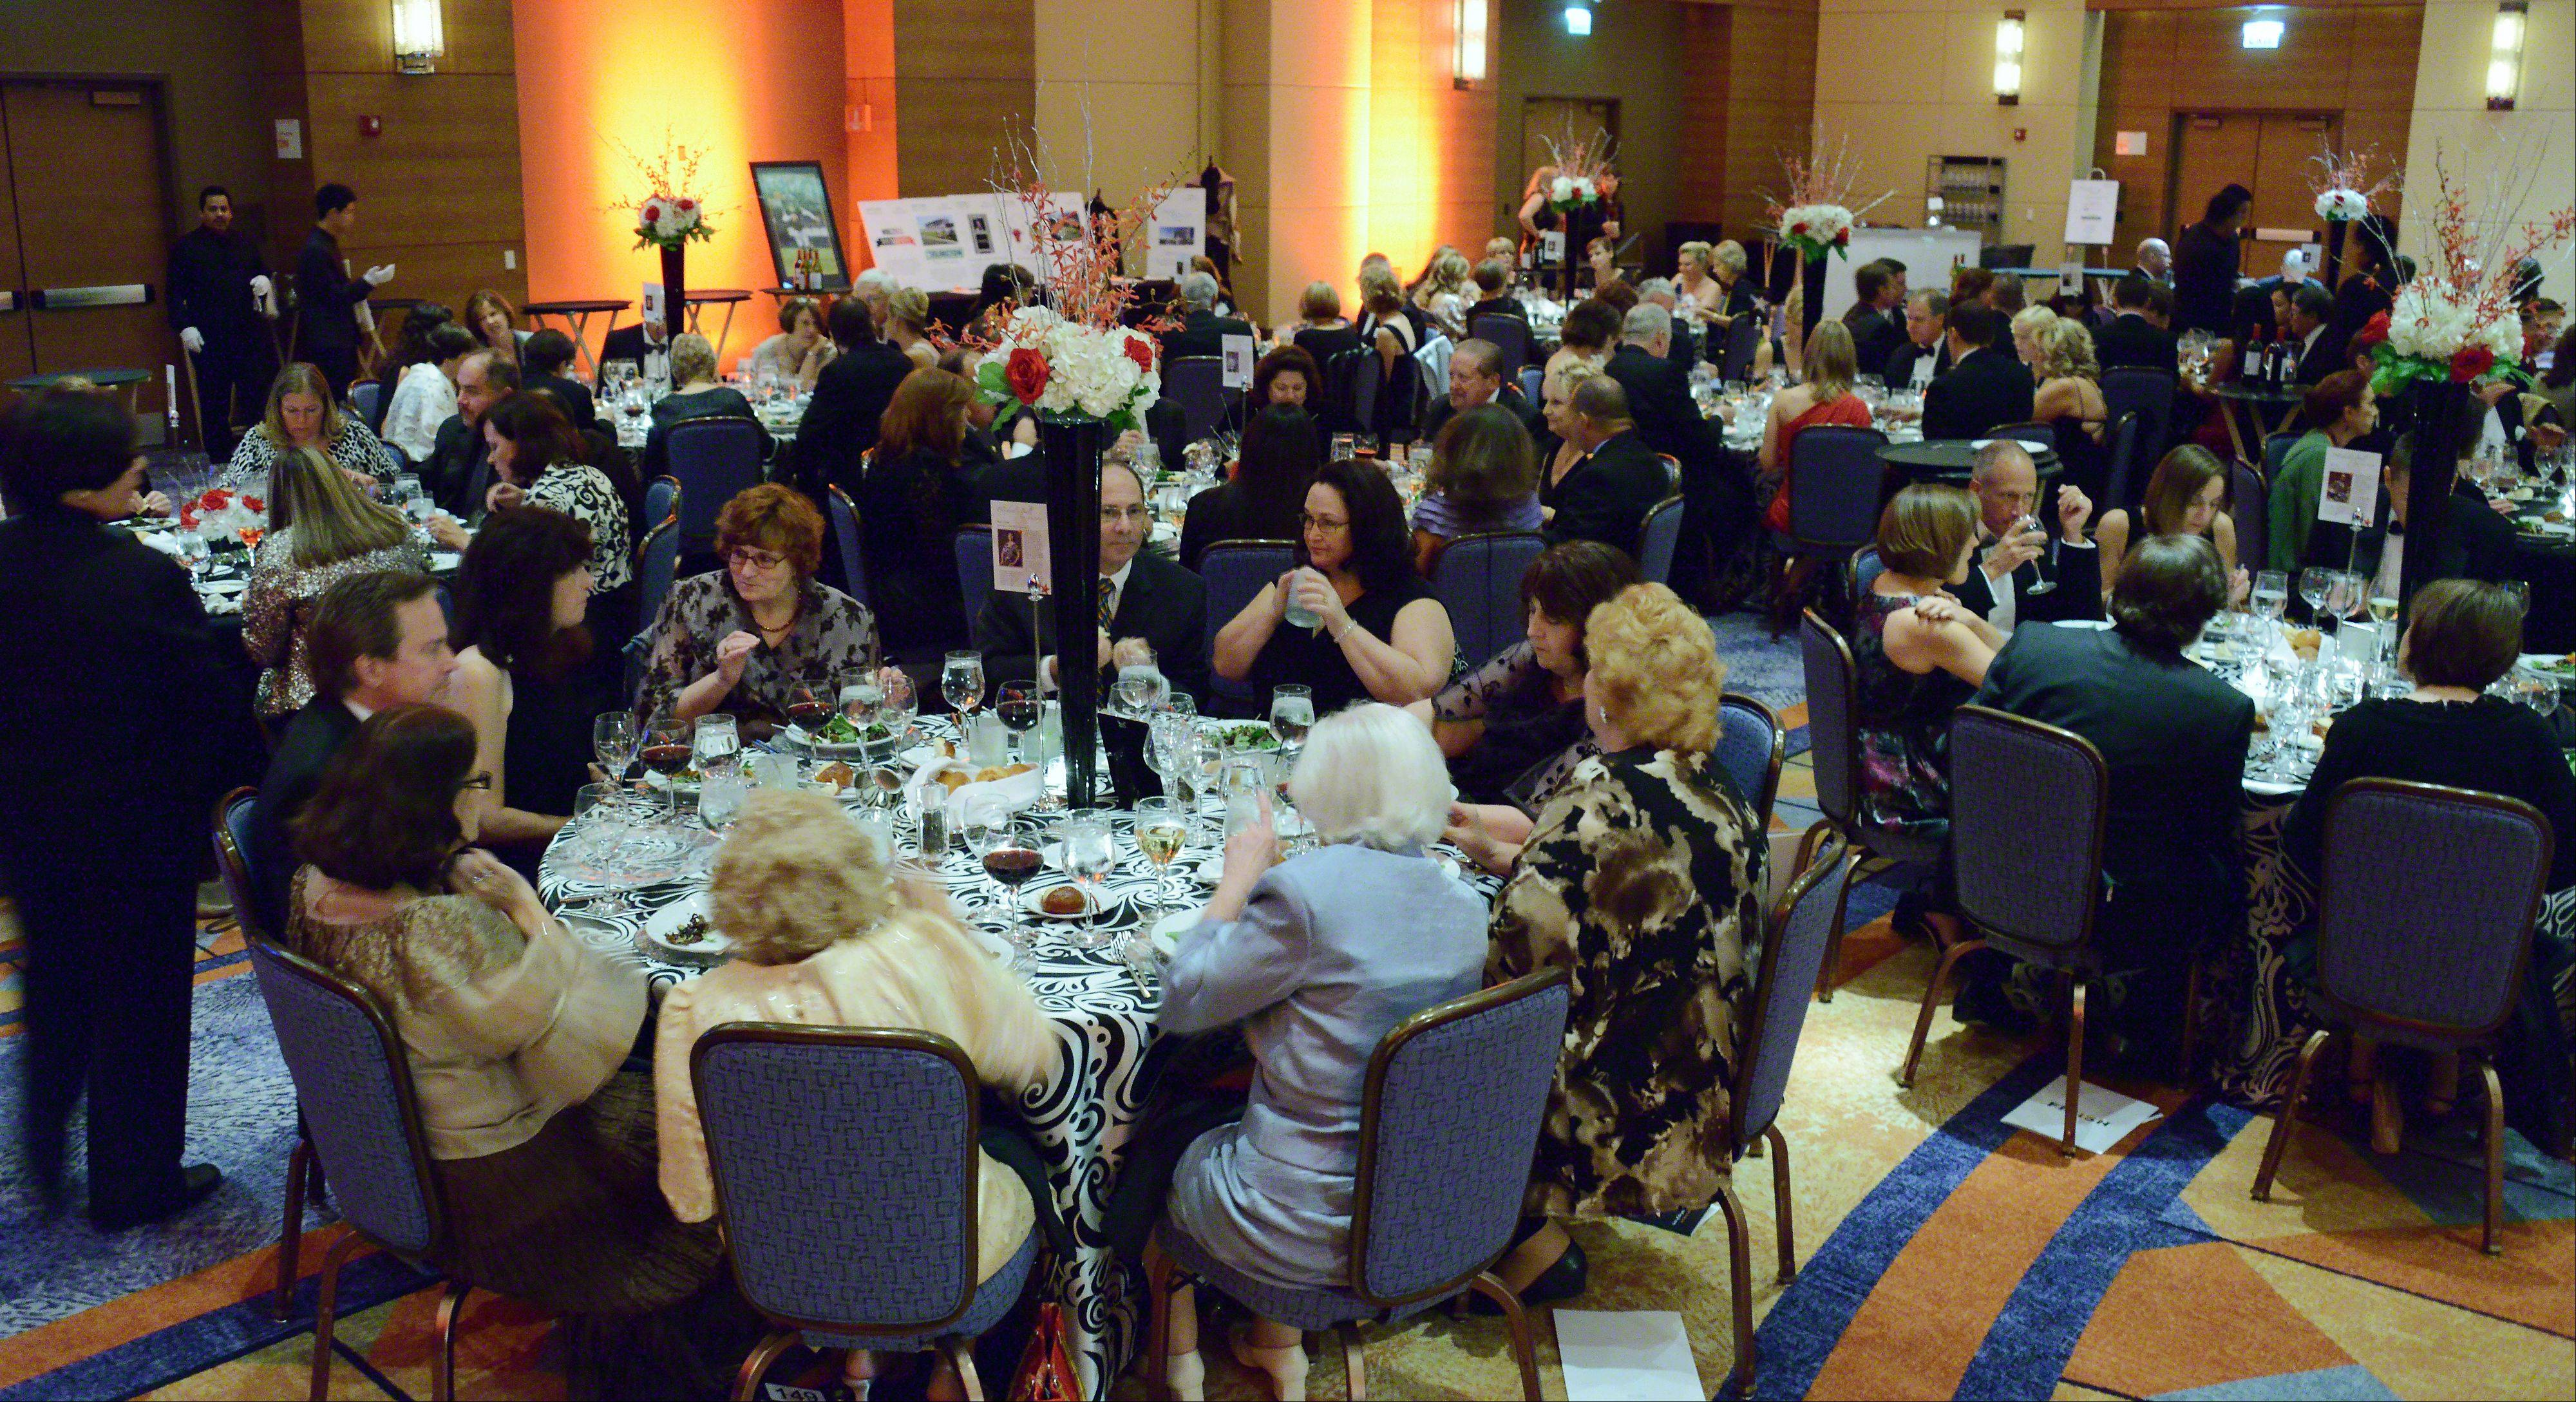 More than 400 people attended the gala fundraiser for the Harper College Educational Foundation in Schaumburg.